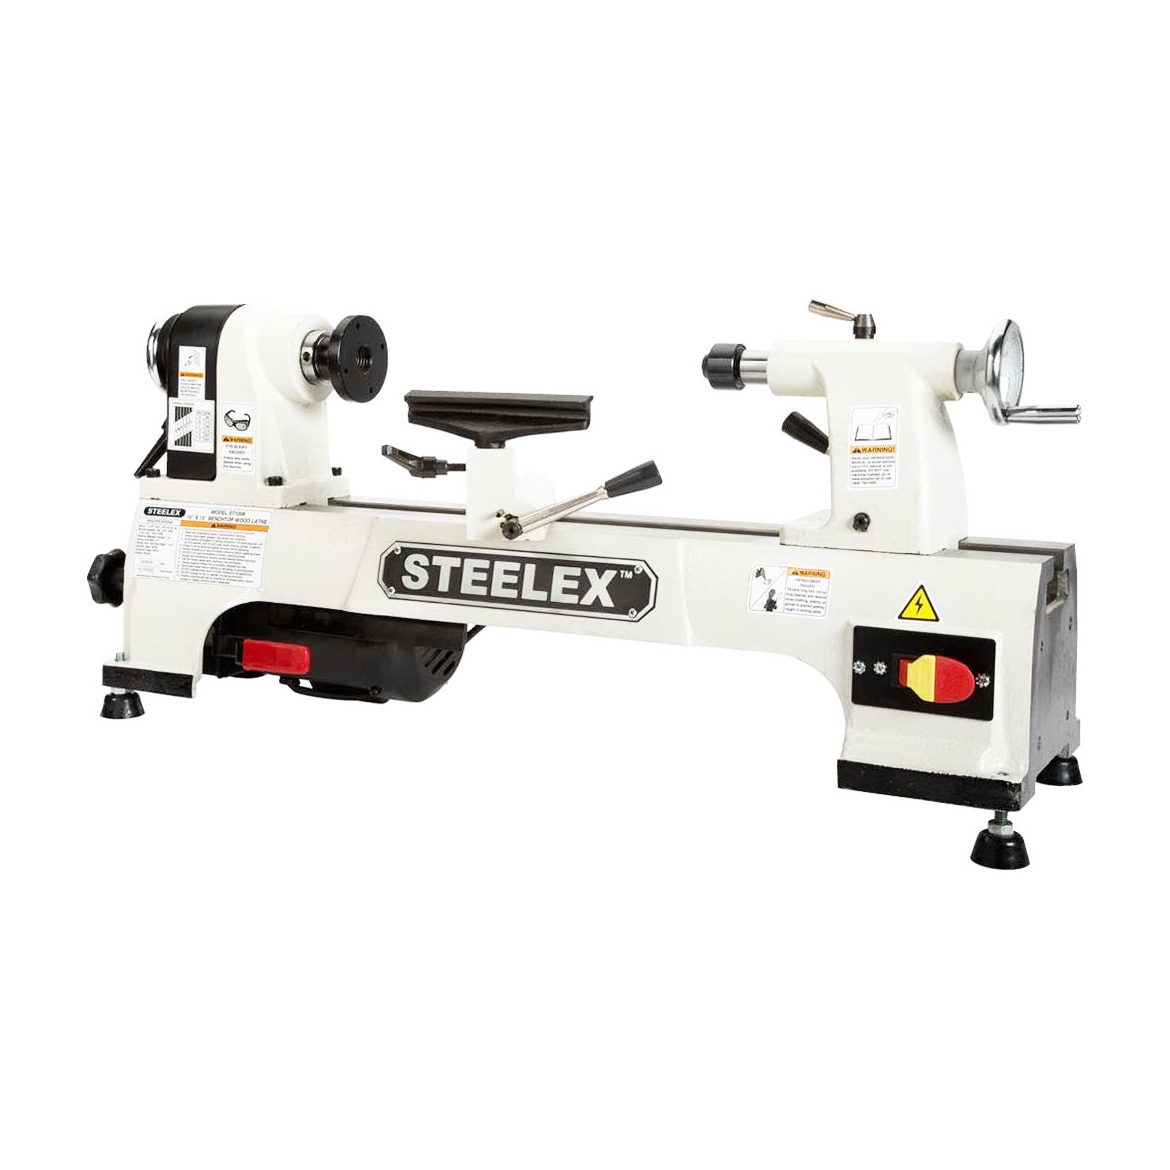 Steelex ST1008 10-Inch x 15-Inch 1 2-Hp Single-Phase Benchtop Wood Lathe by STEELEX